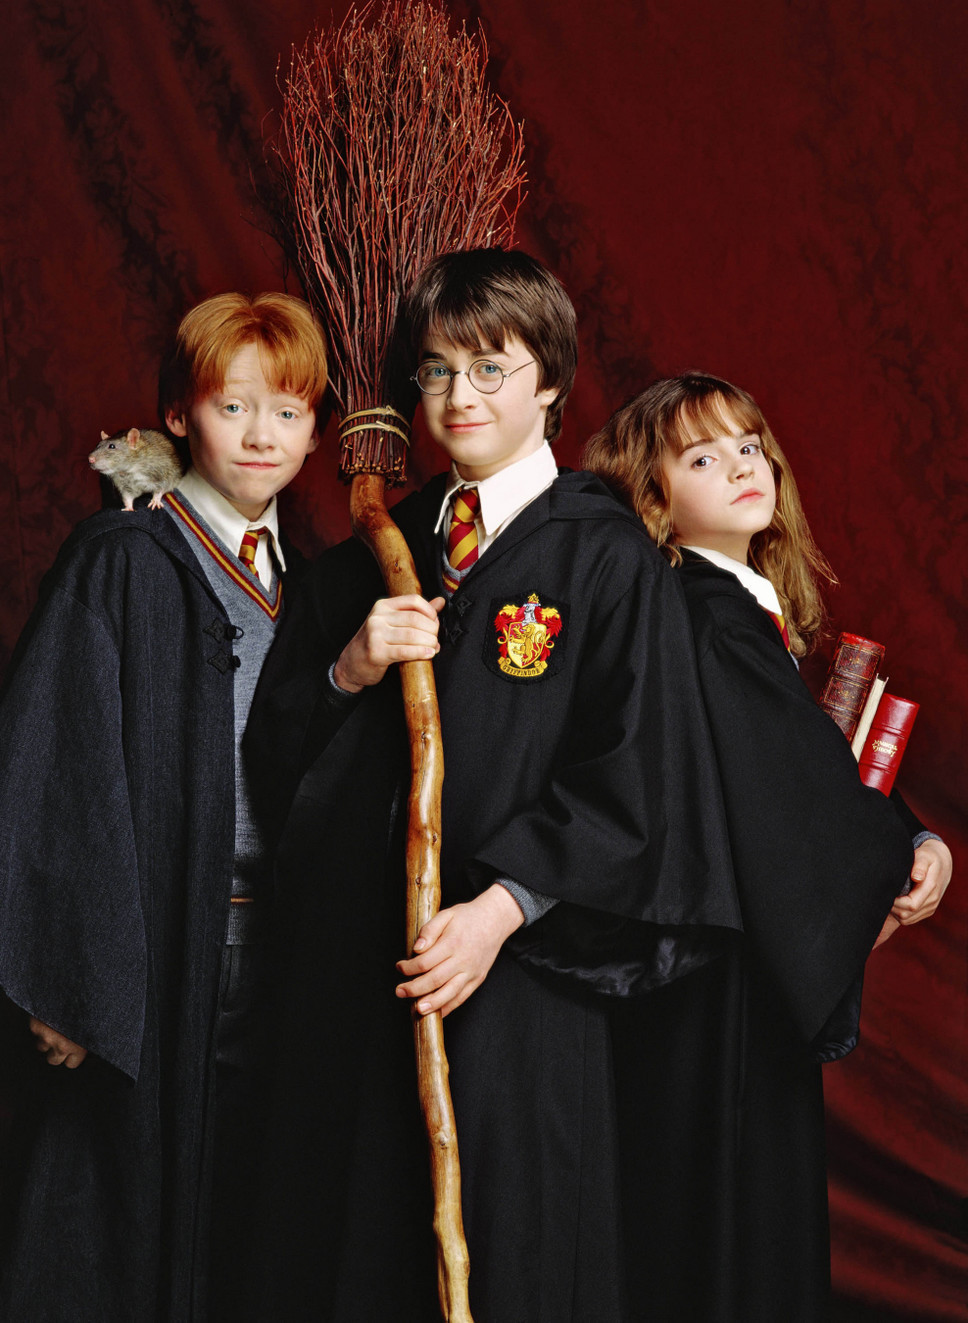 Harry, Ron y Hermione